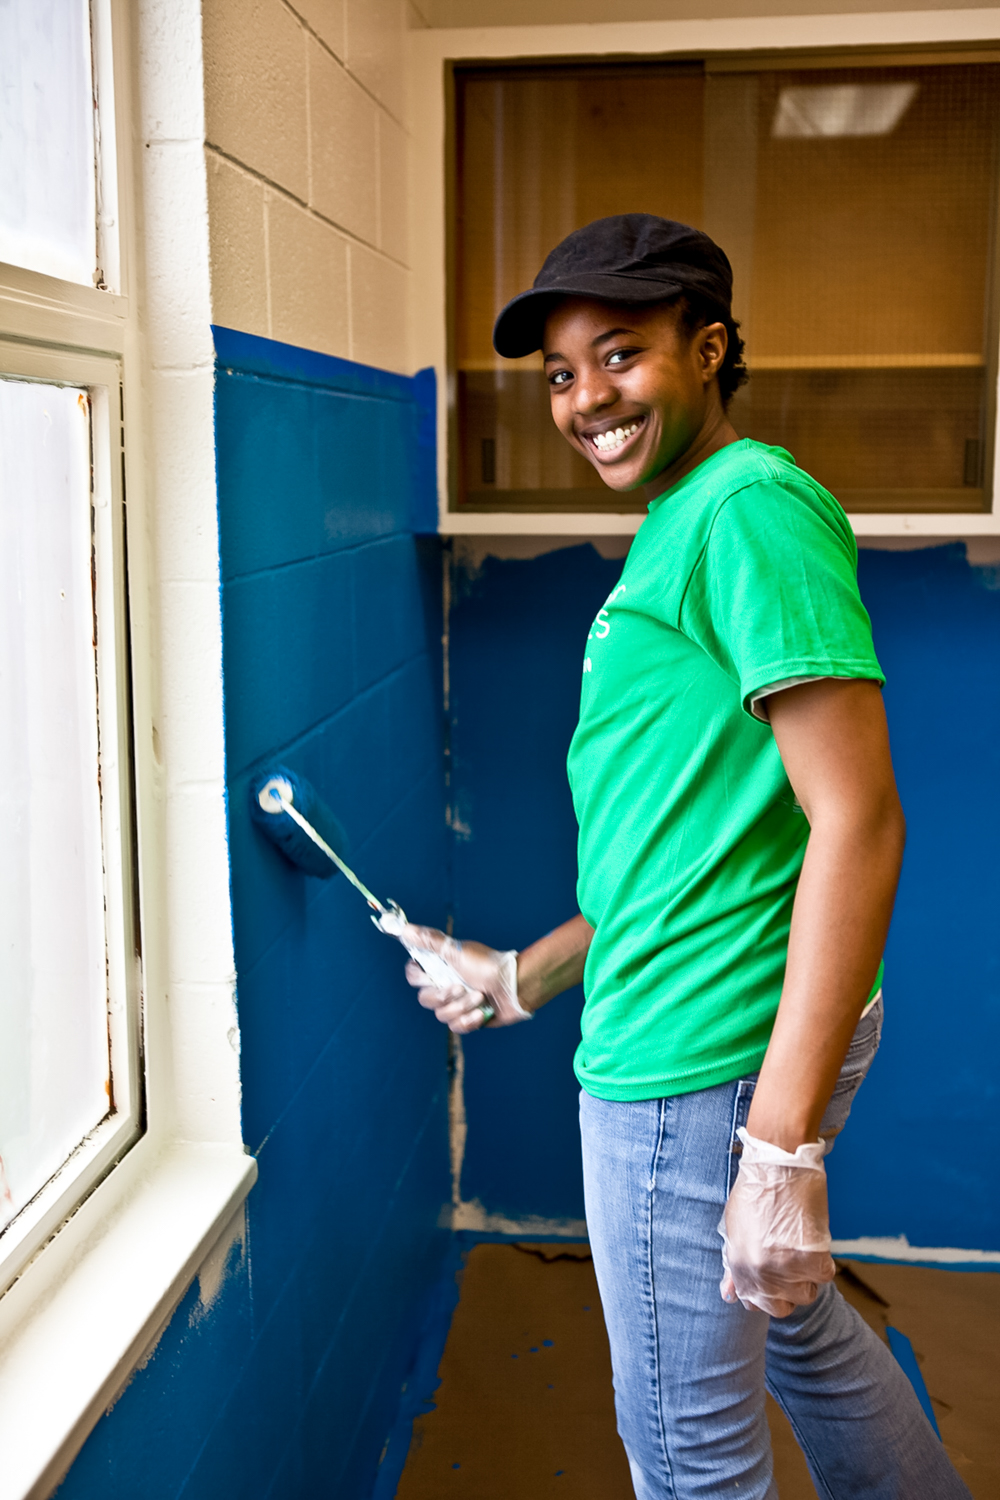 Woman smiling and painting wall at non-profit volunteer event